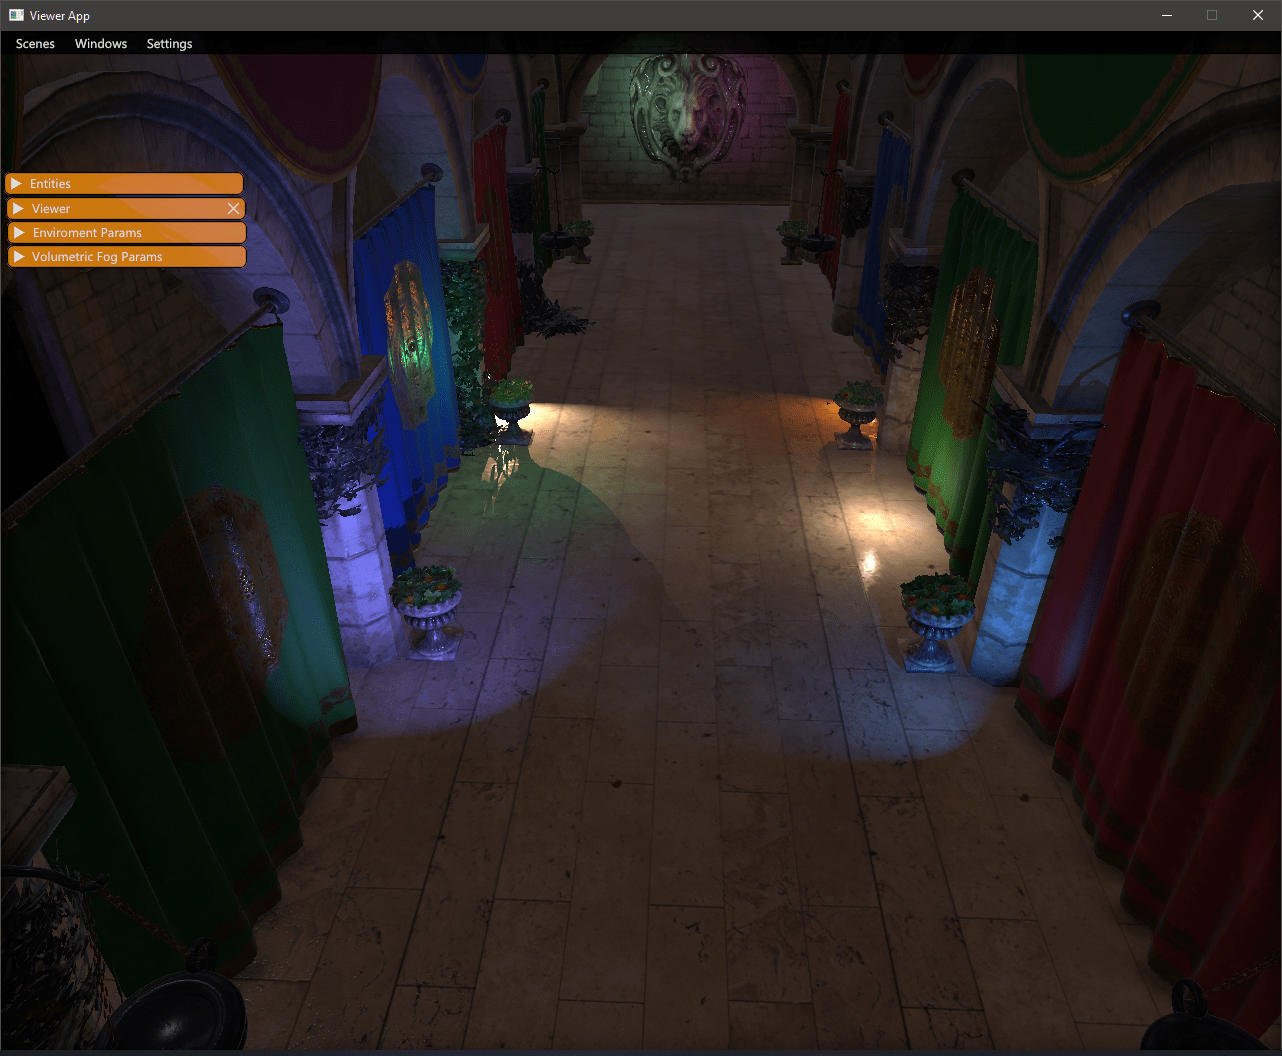 Deferred Lighting using 3D clustering and GPU culling